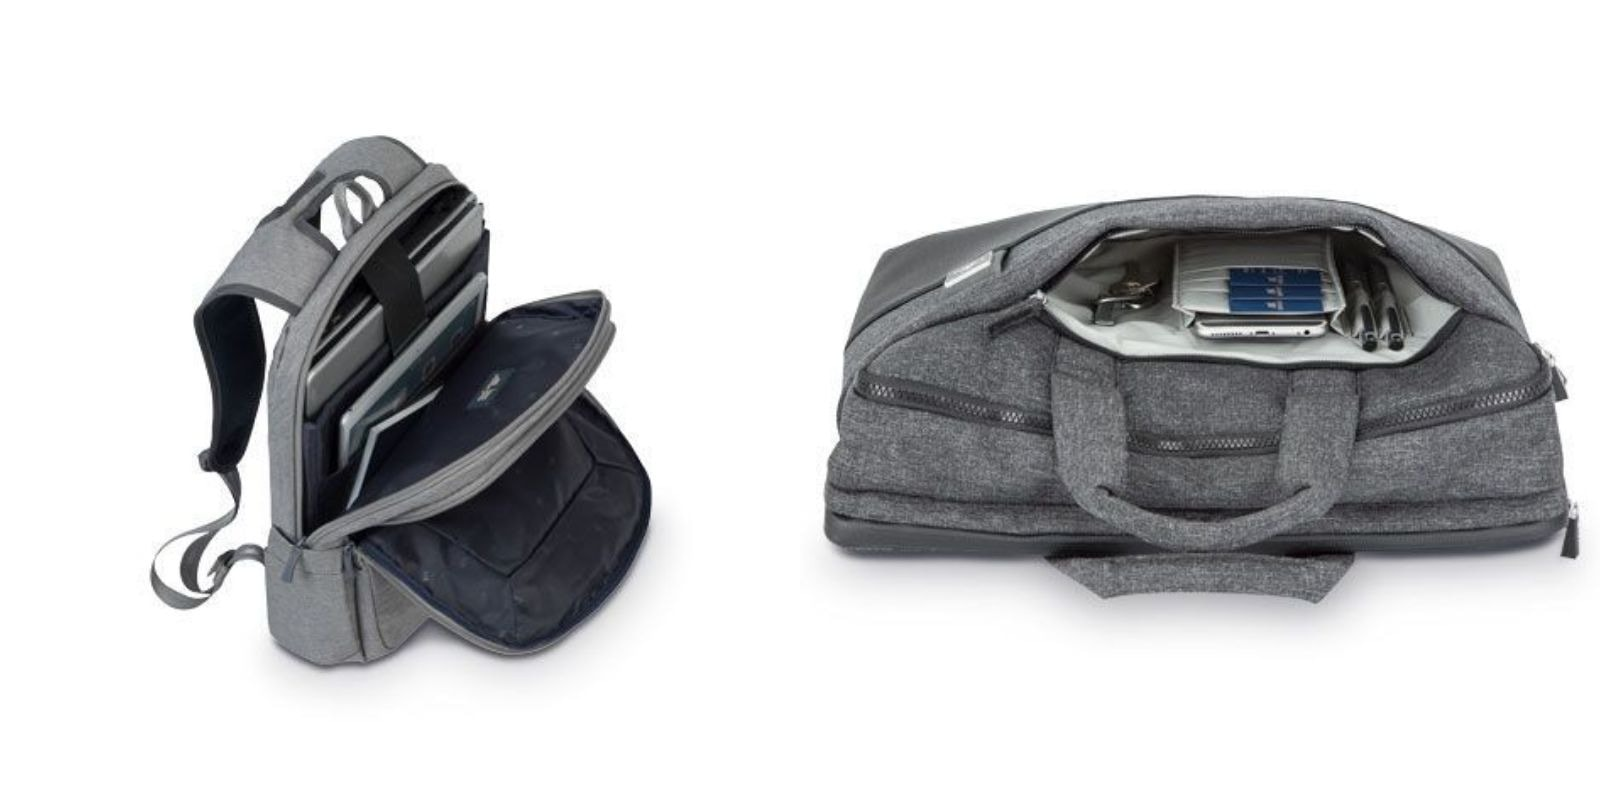 This pair of laptop bags offers great choices for carrying your gear comfortably and in style.